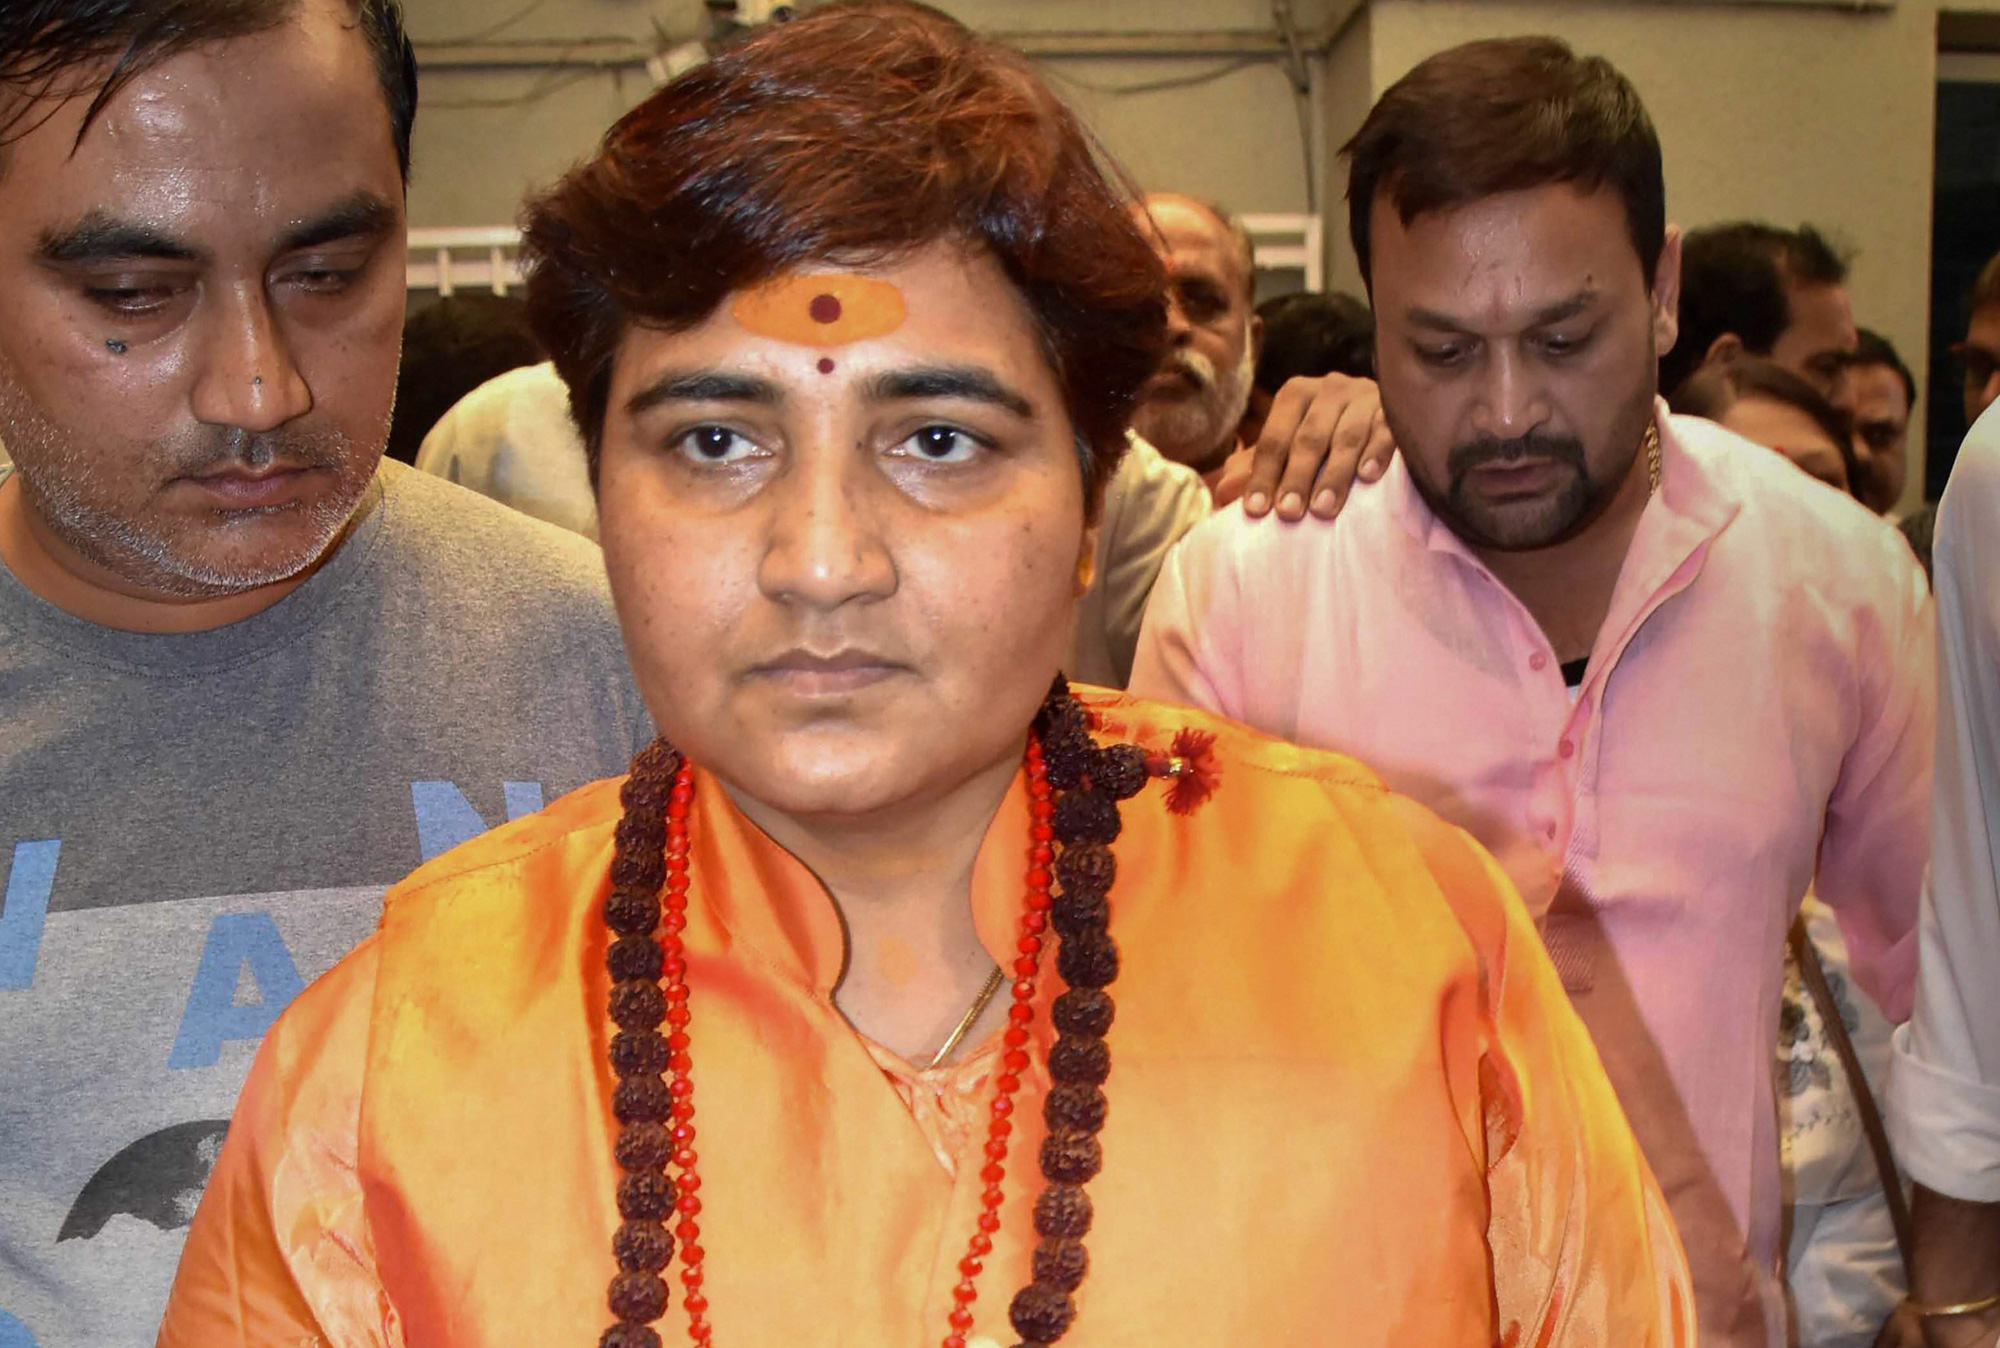 Pragya Singh Thakur arrives at the Madhya Pradesh BJP headquarters in Bhopal on Wednesday, April 17. That the BJP inducted her just before announcing her candidacy indicates its wish to employ a full-on Hindutva strategy with its unmistakable undertone of threat and violence